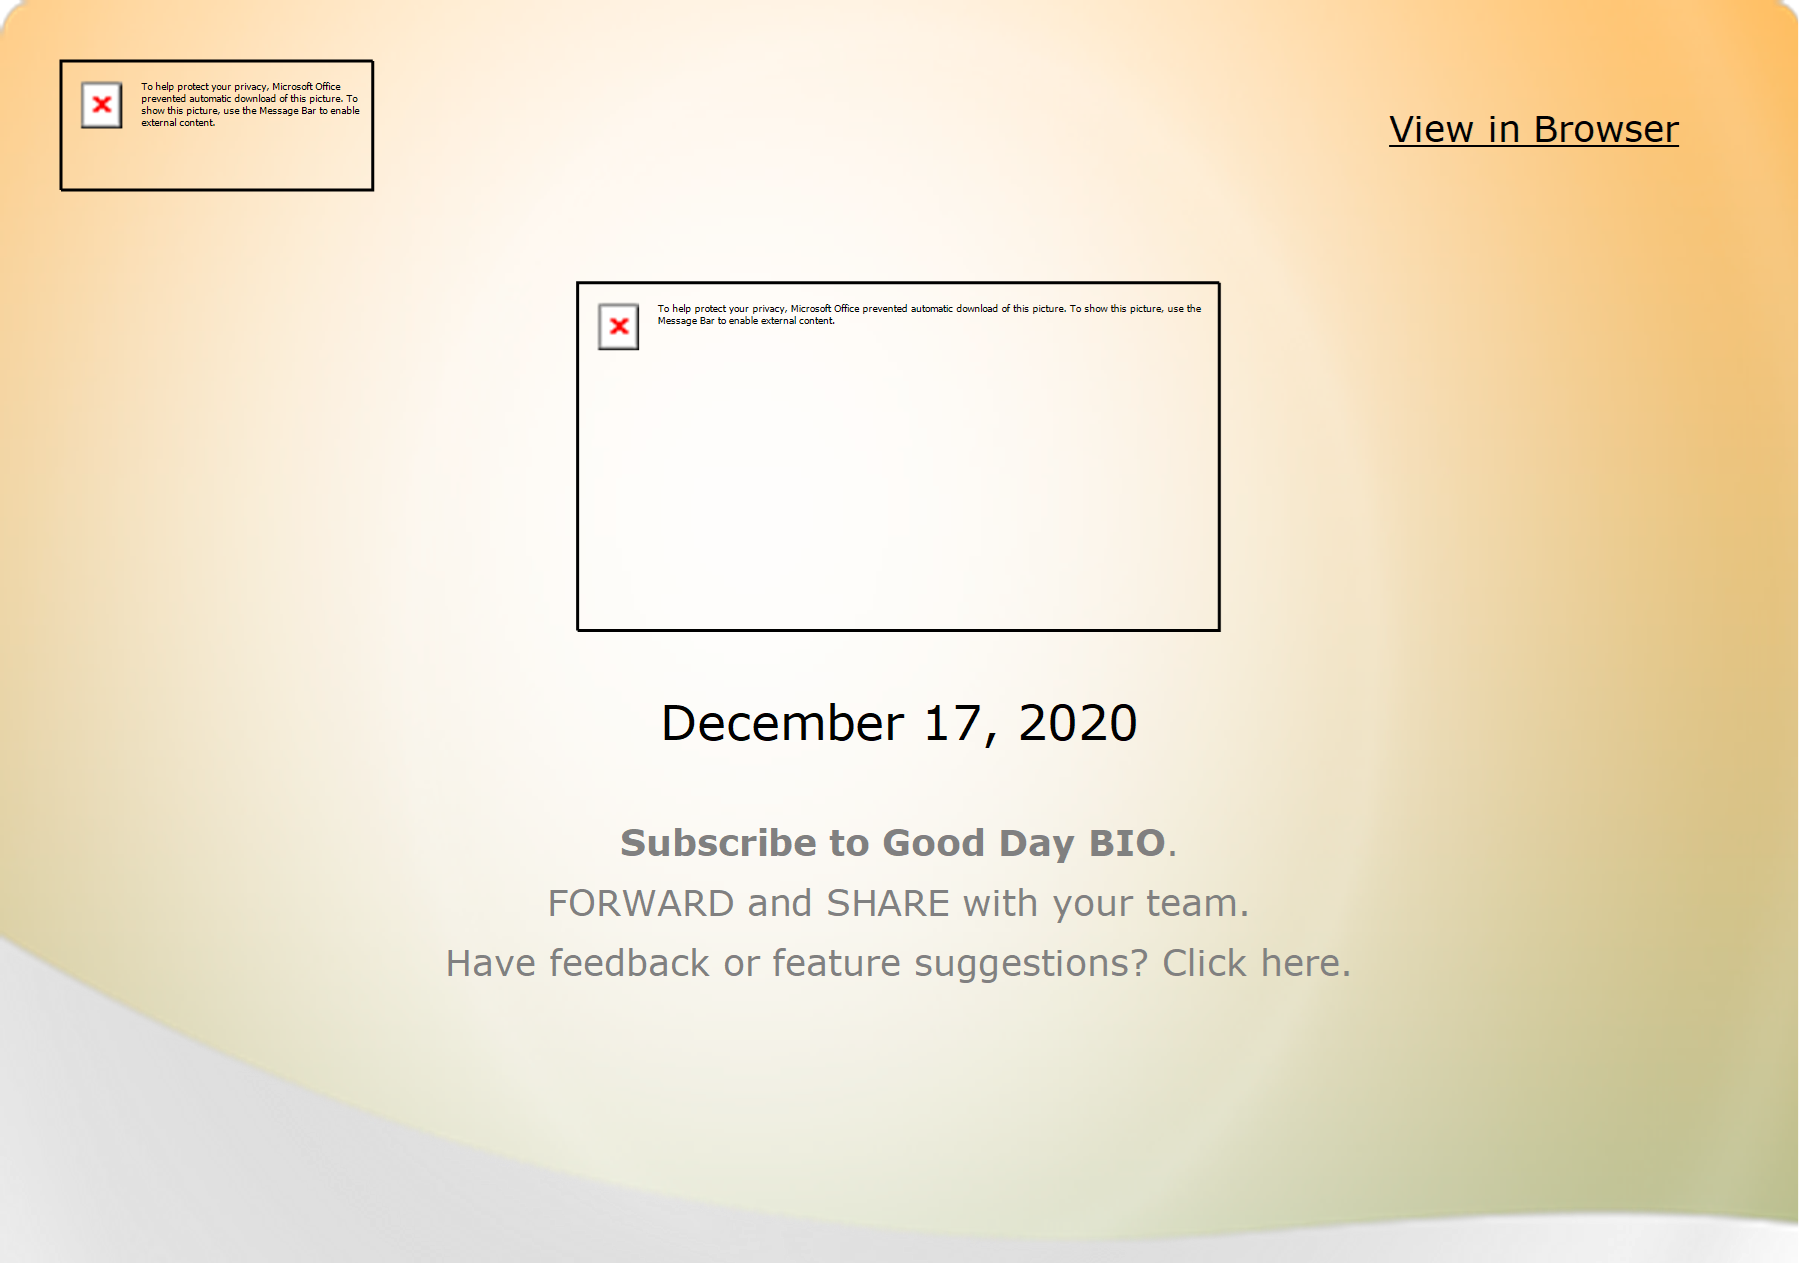 View in Browser                  December 17, 2020  Subscribe to Good Day BIO.   FORWARD and SHARE with your team.   Have feedback or feature suggestions? Click here.